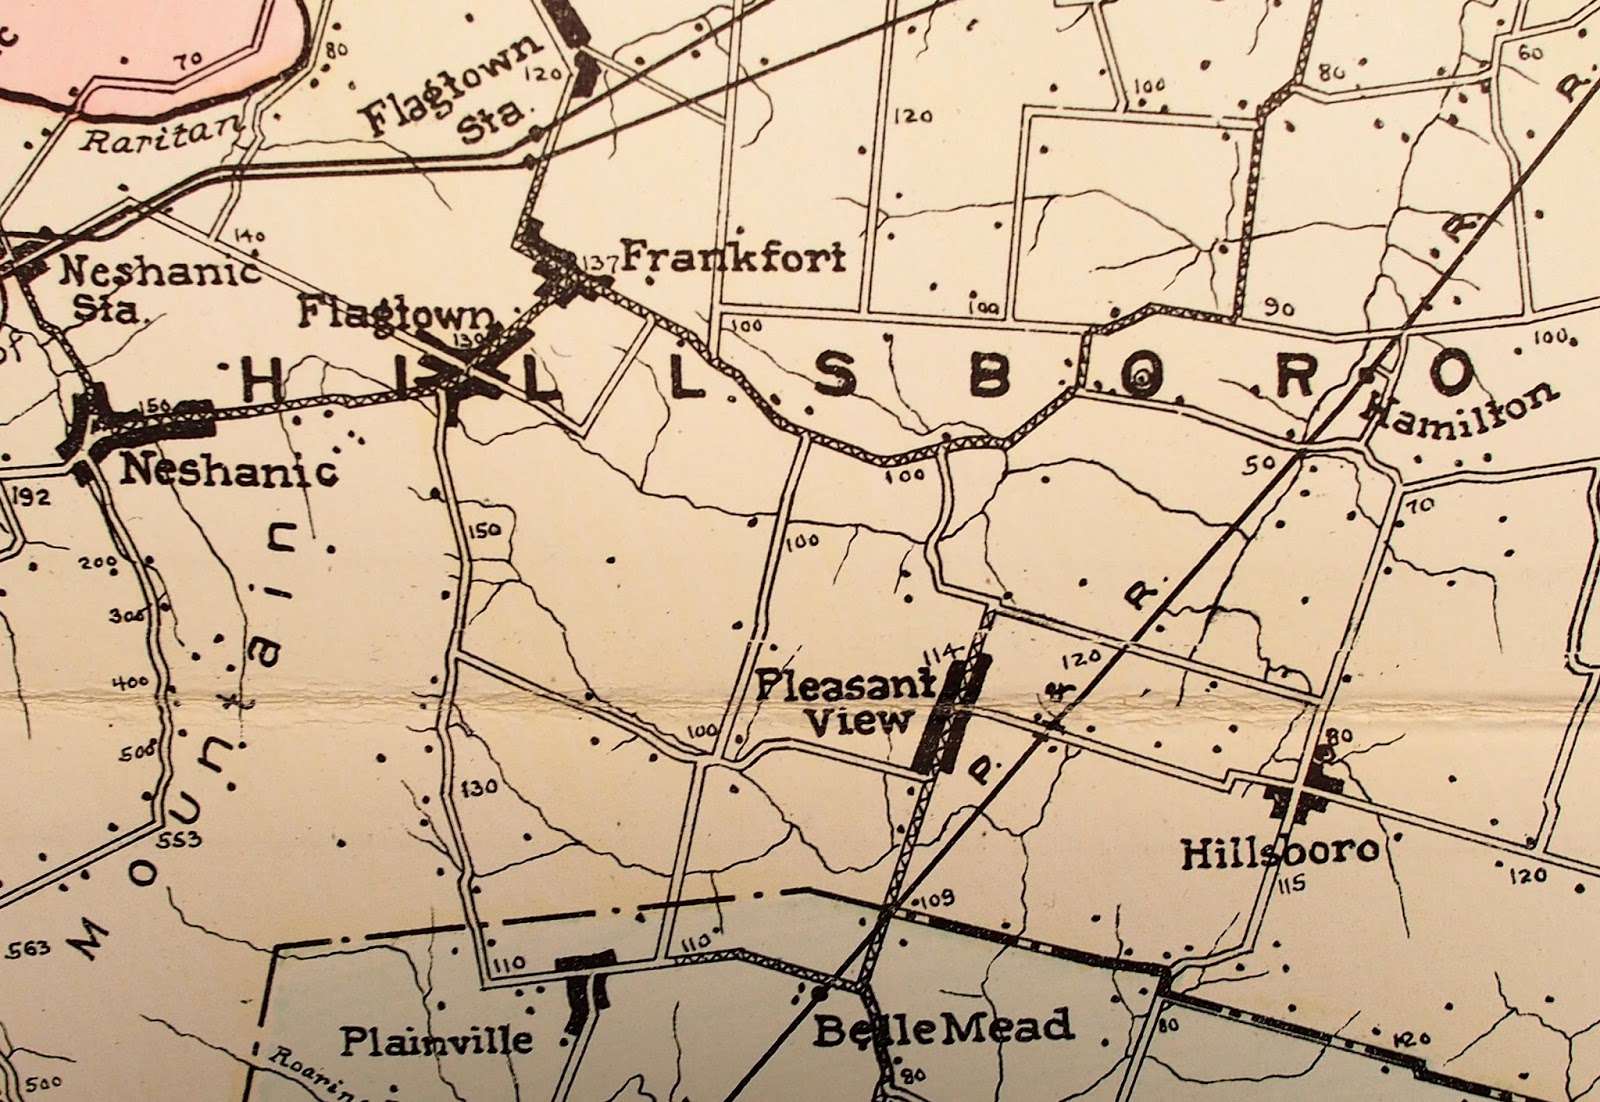 New jersey somerset county flagtown - Plainville Is Just A Short Carriage Ride From Belle Mead Station As Depicted On This Turn Of The Century Somerset County Map